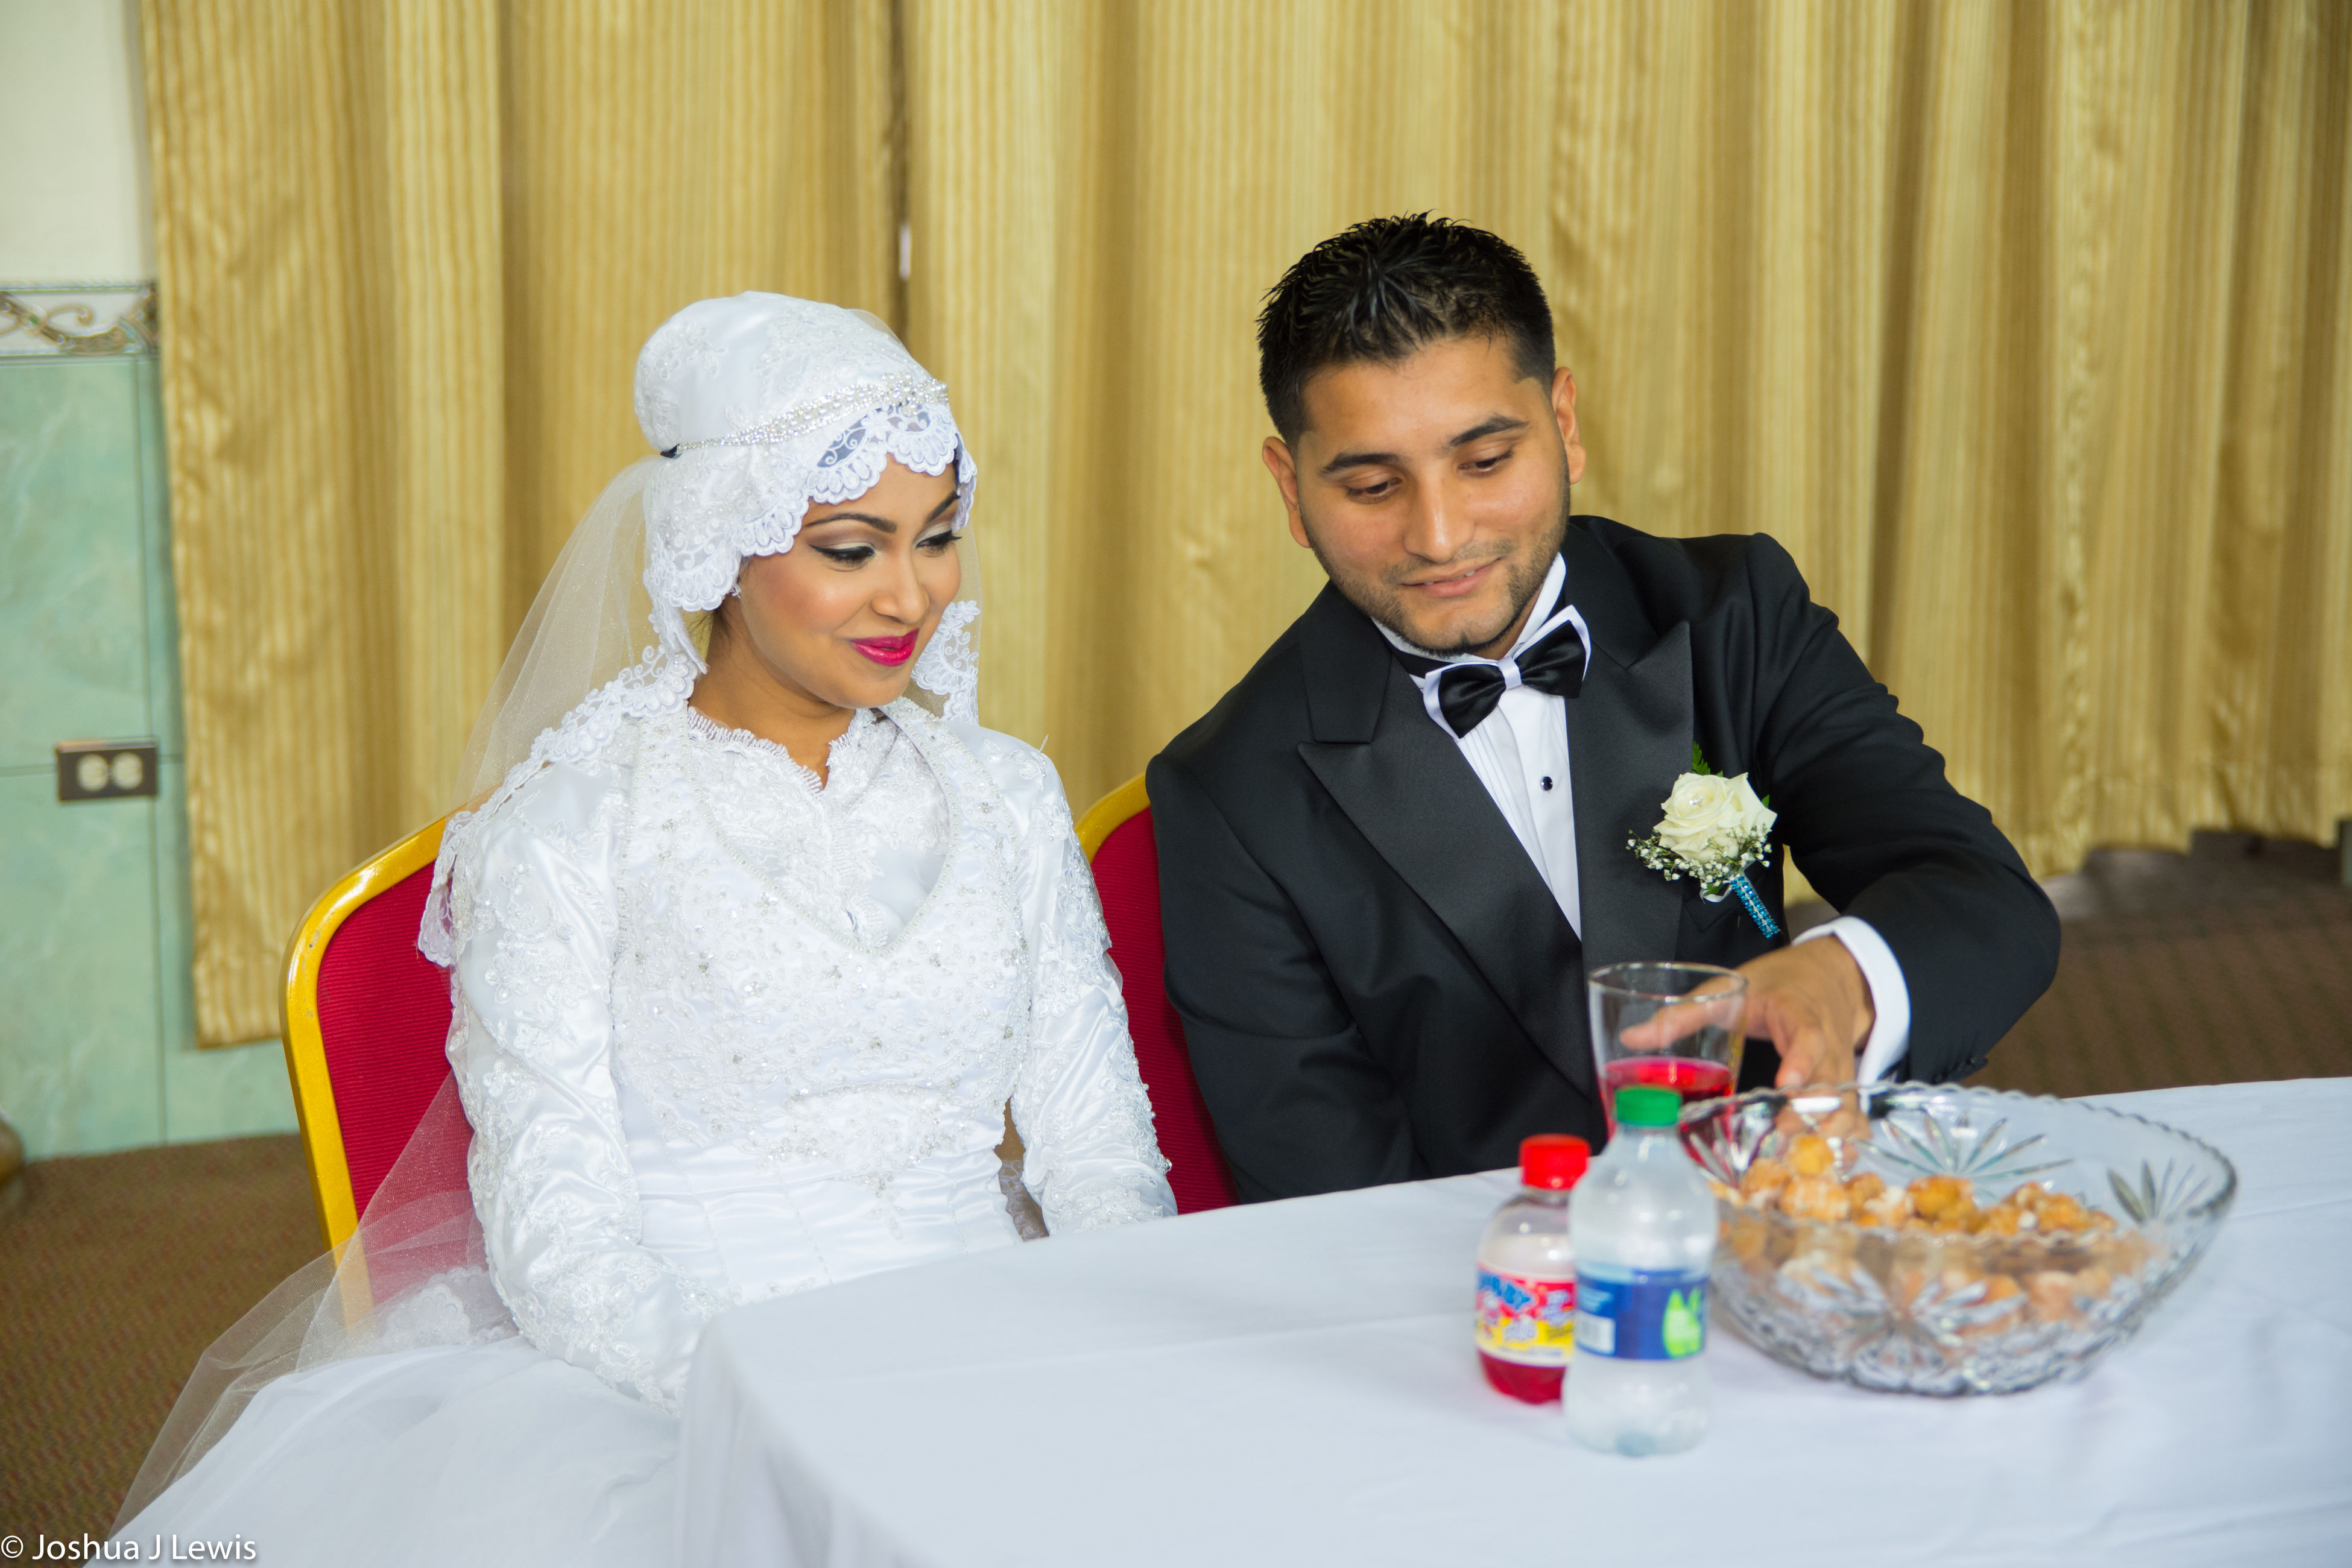 two people, wedding, bridegroom, celebration, indoors, wedding ceremony, love, togetherness, guest, men, couple - relationship, fashion, life events, couple, smiling, friendship, beginnings, event, civil partnership, adults only, husband, dedication, food, gourmet, young adult, happiness, human role, cheerful, adult, people, day